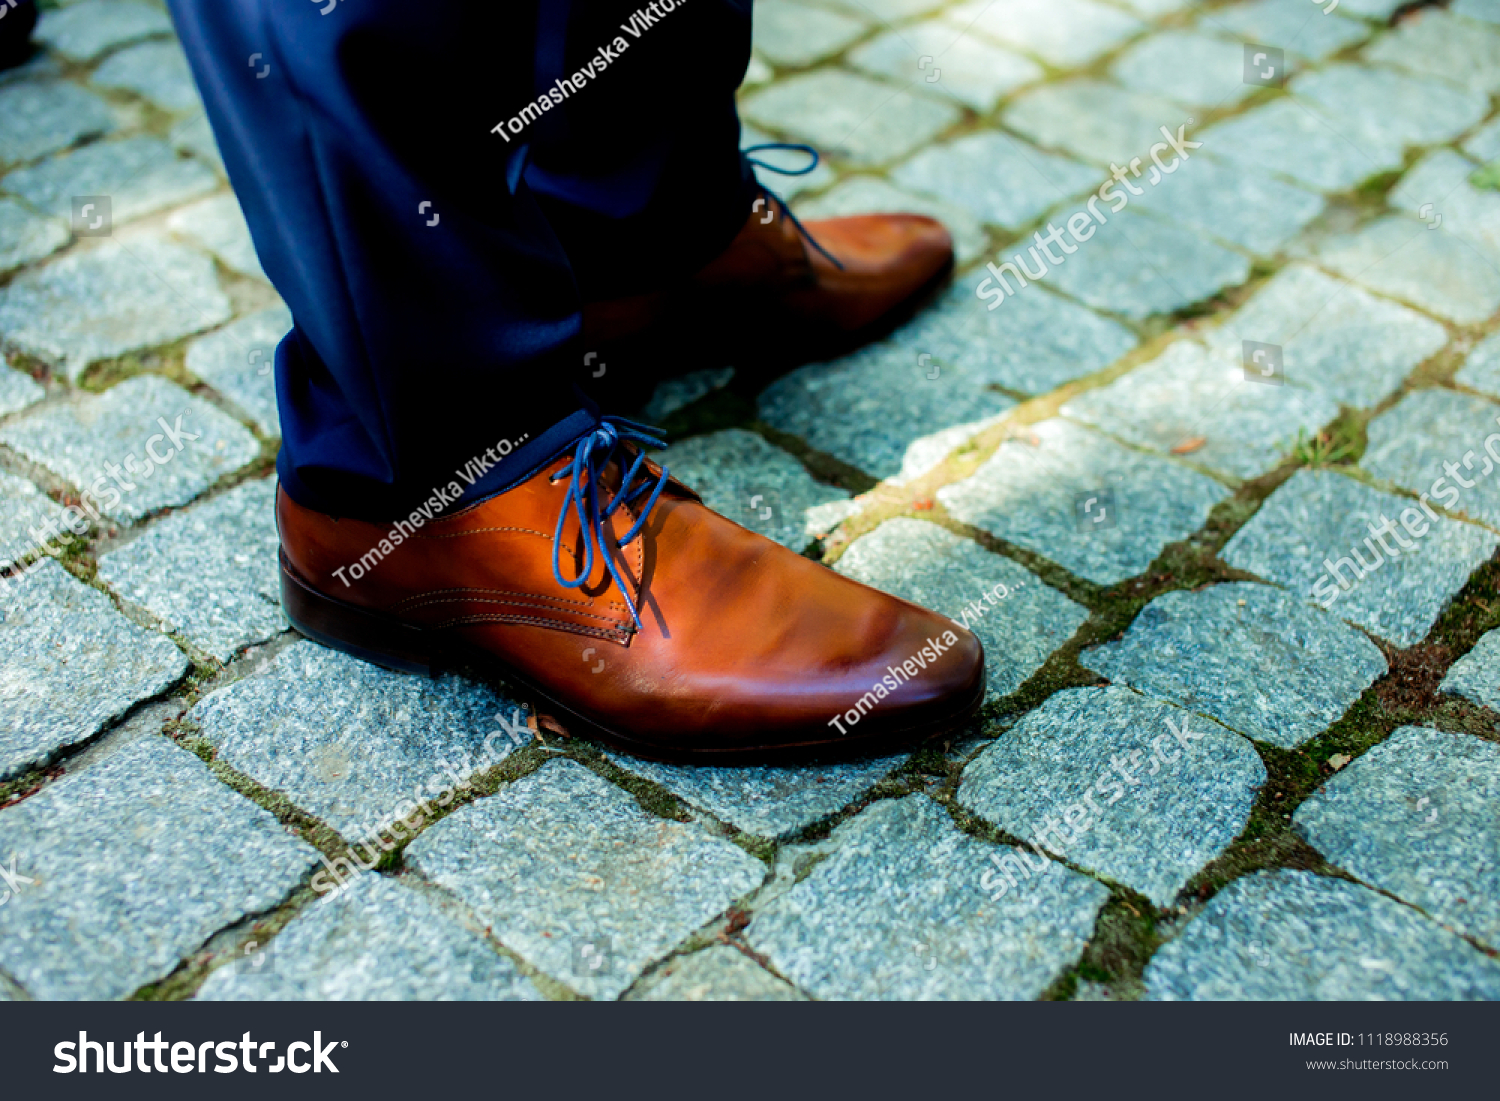 f199e3ce71 Mens Shoes Shoes Groom Brown Shoes Stock Photo (Edit Now) 1118988356 ...